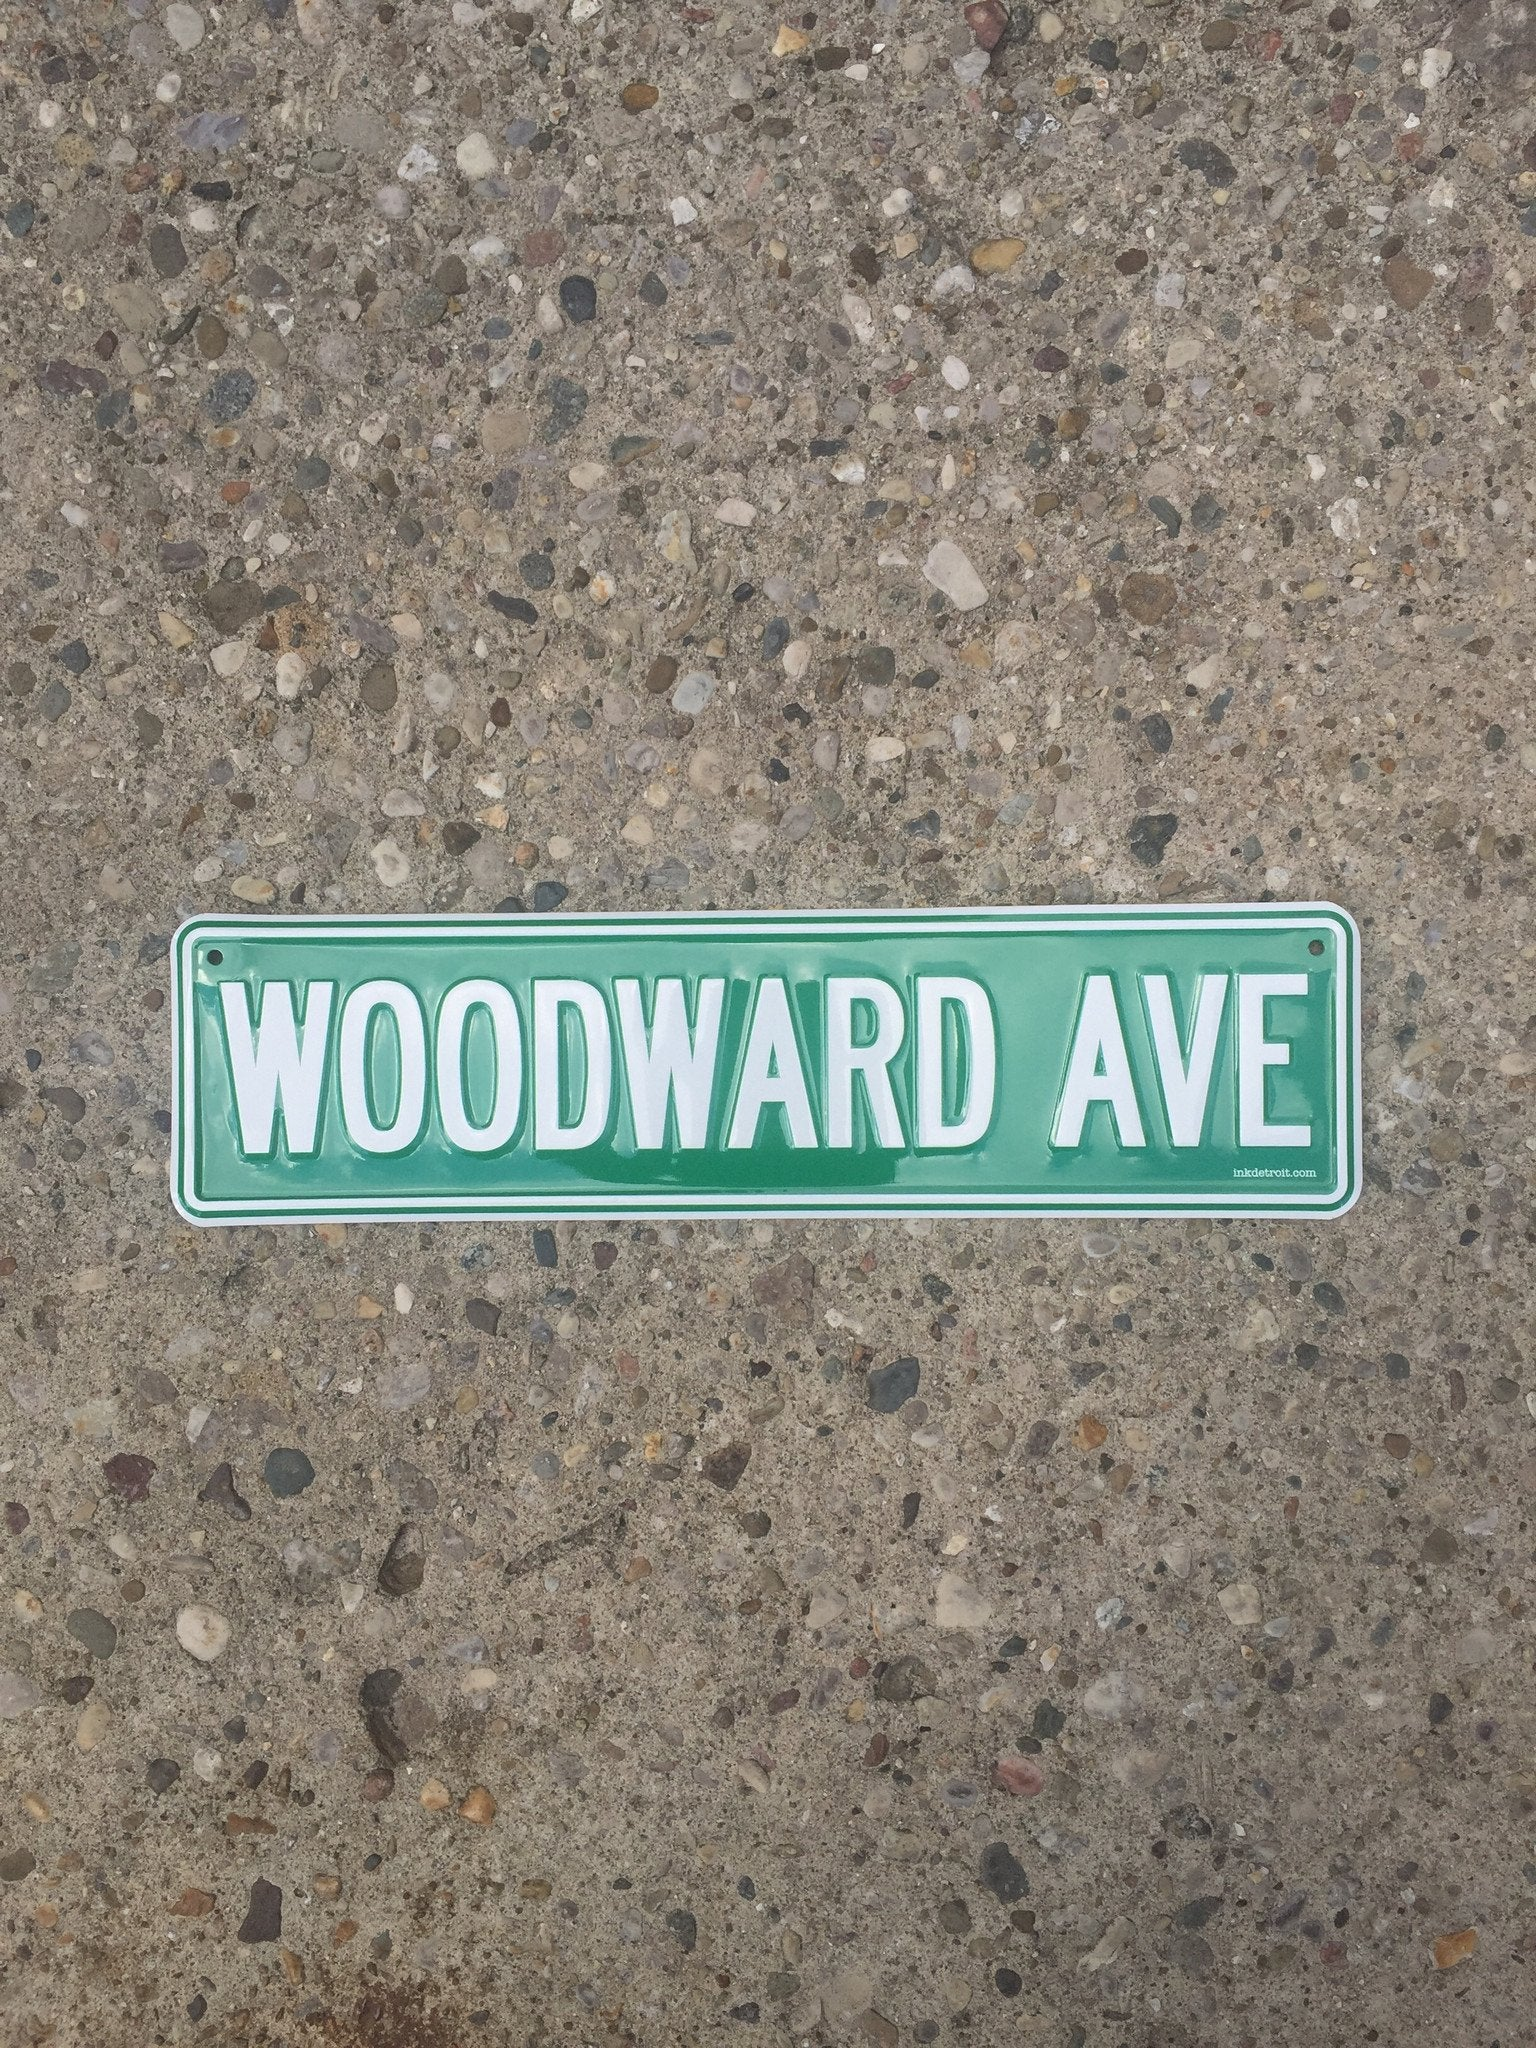 Woodward Ave street sign - The Great Lakes State